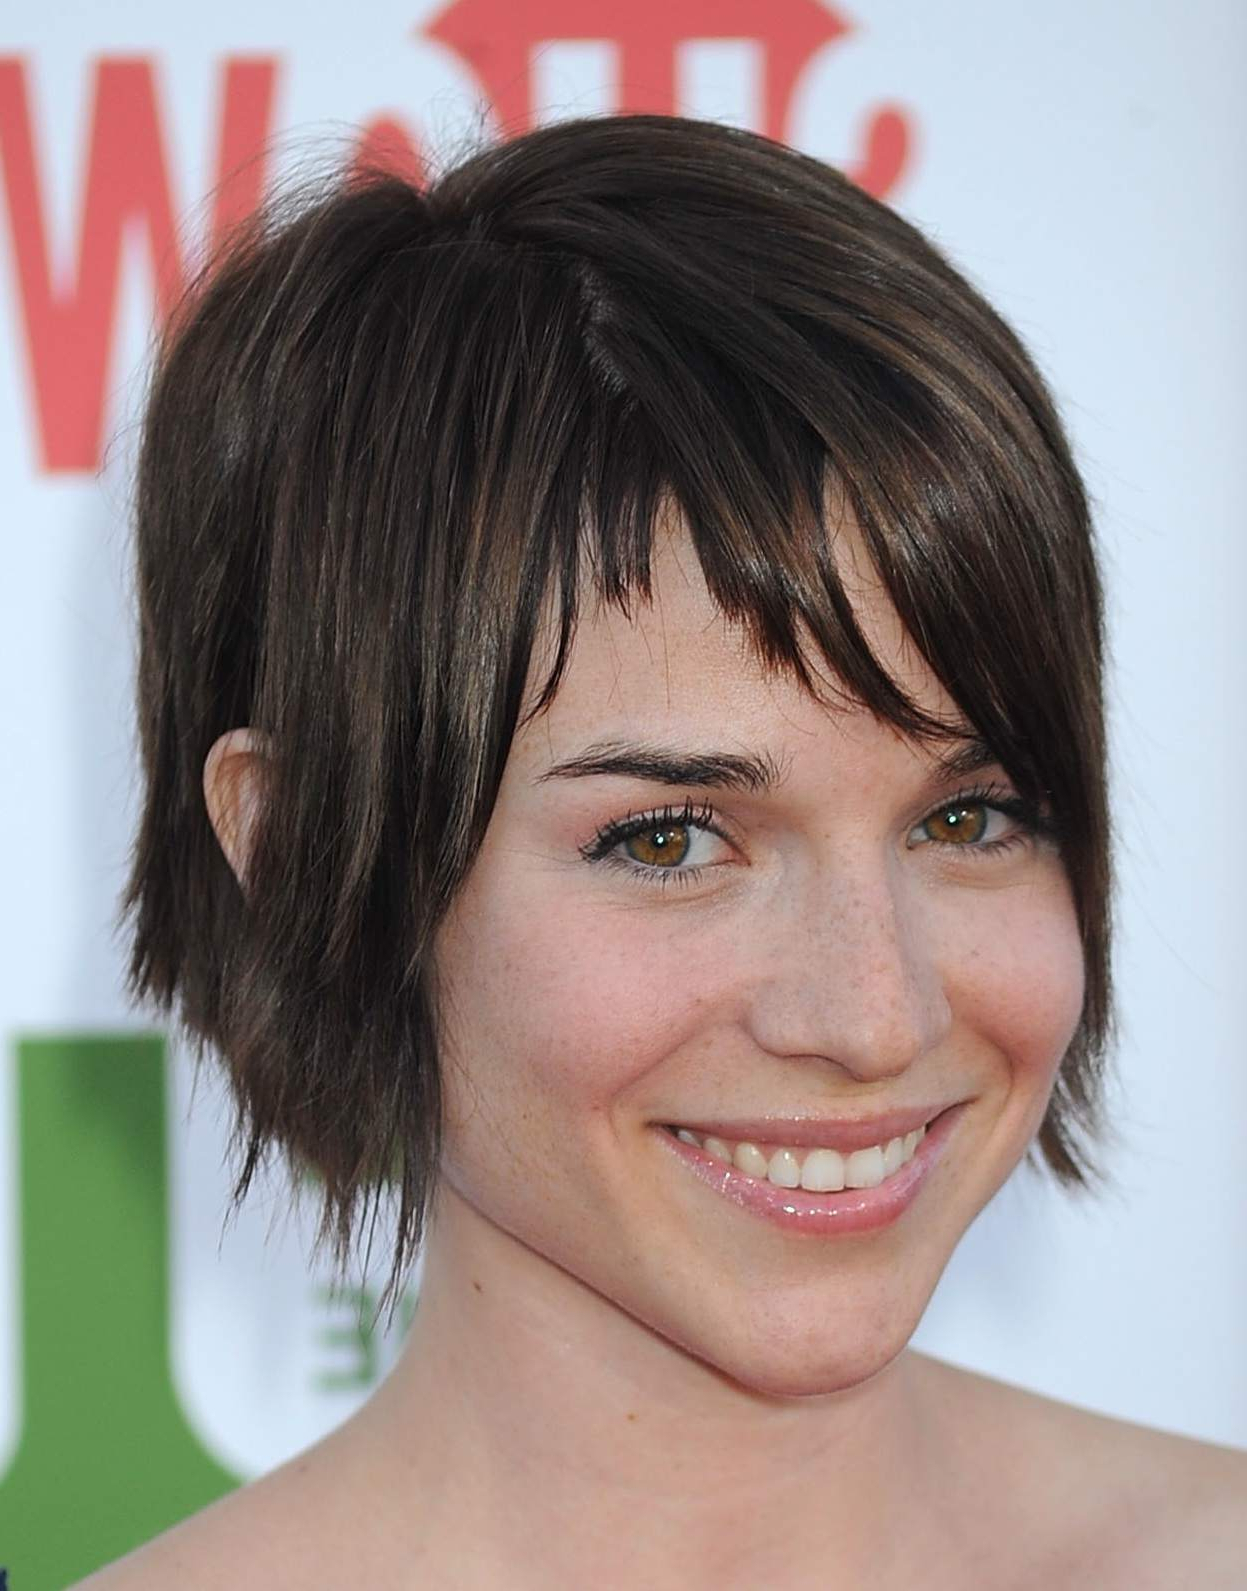 From Pixies To Shags: 18 Great Cuts For Short, Brown Hair Pertaining To Dramatic Short Haircuts (View 15 of 25)